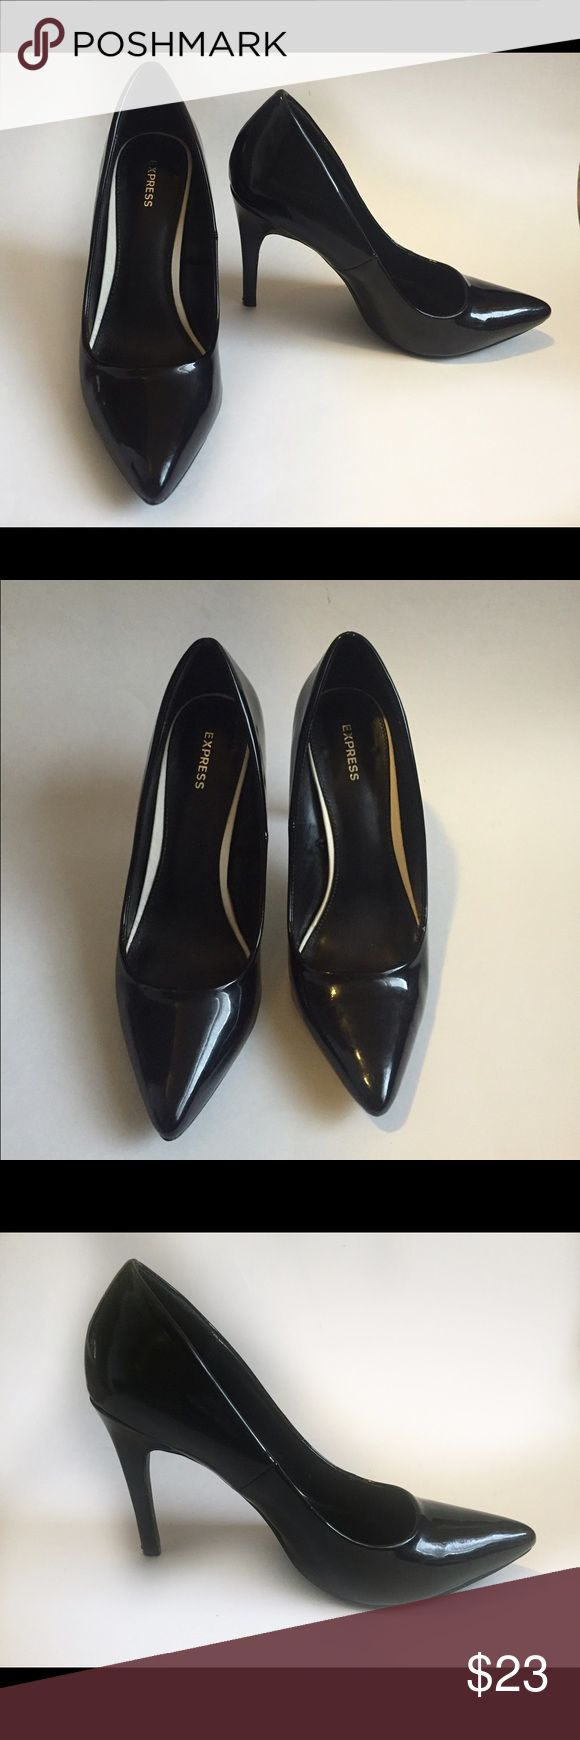 Express black heels These Express black heels shoes  are without box   Size : 7   Color: black     Tags: express heels. Express shoes , express black heels, black shoes Express Shoes Heels